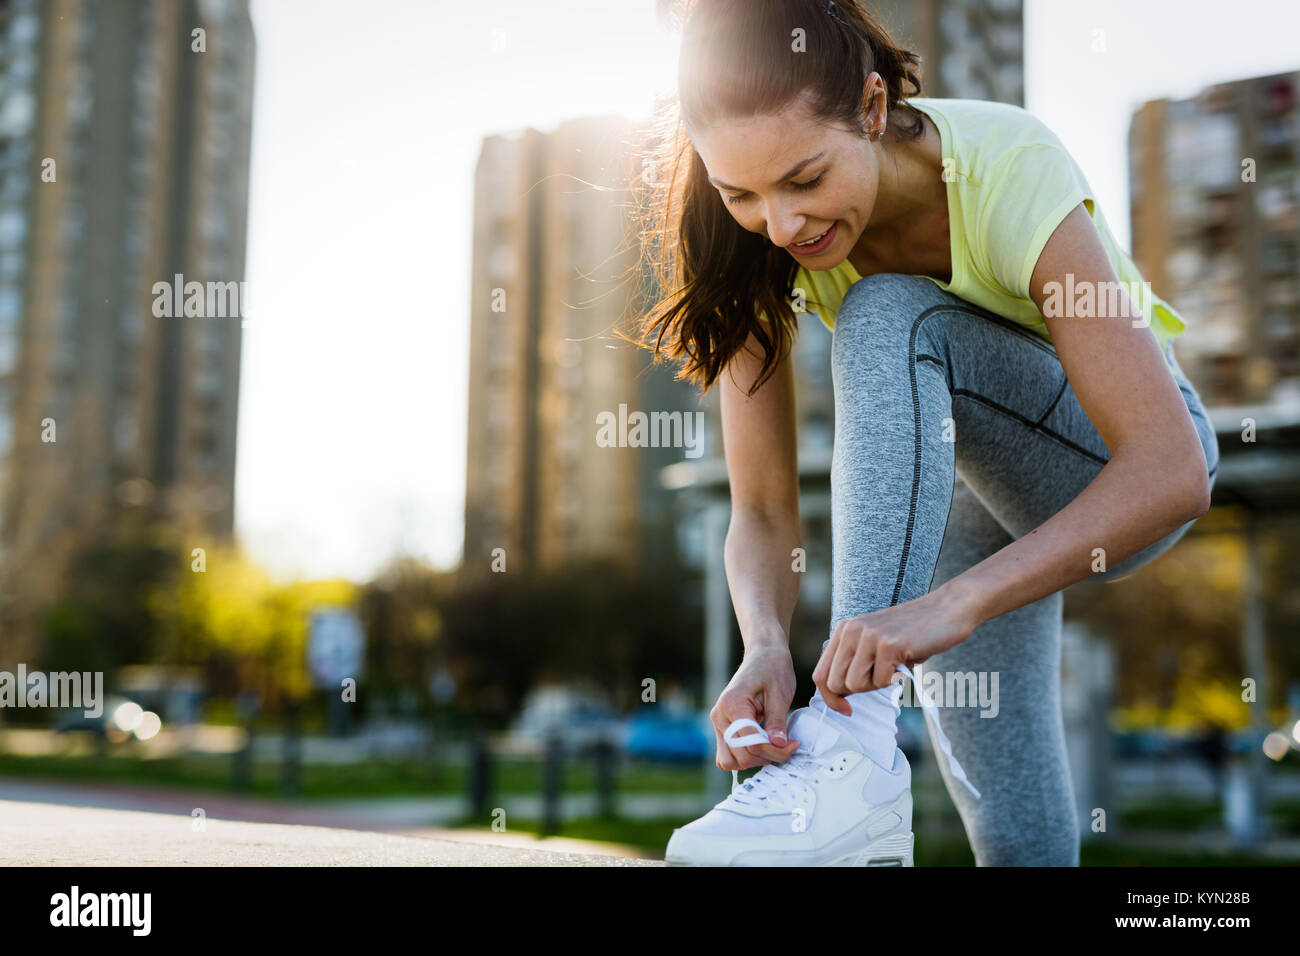 Attractive sportswoman tying shoelace and getting ready for fitness - Stock Image